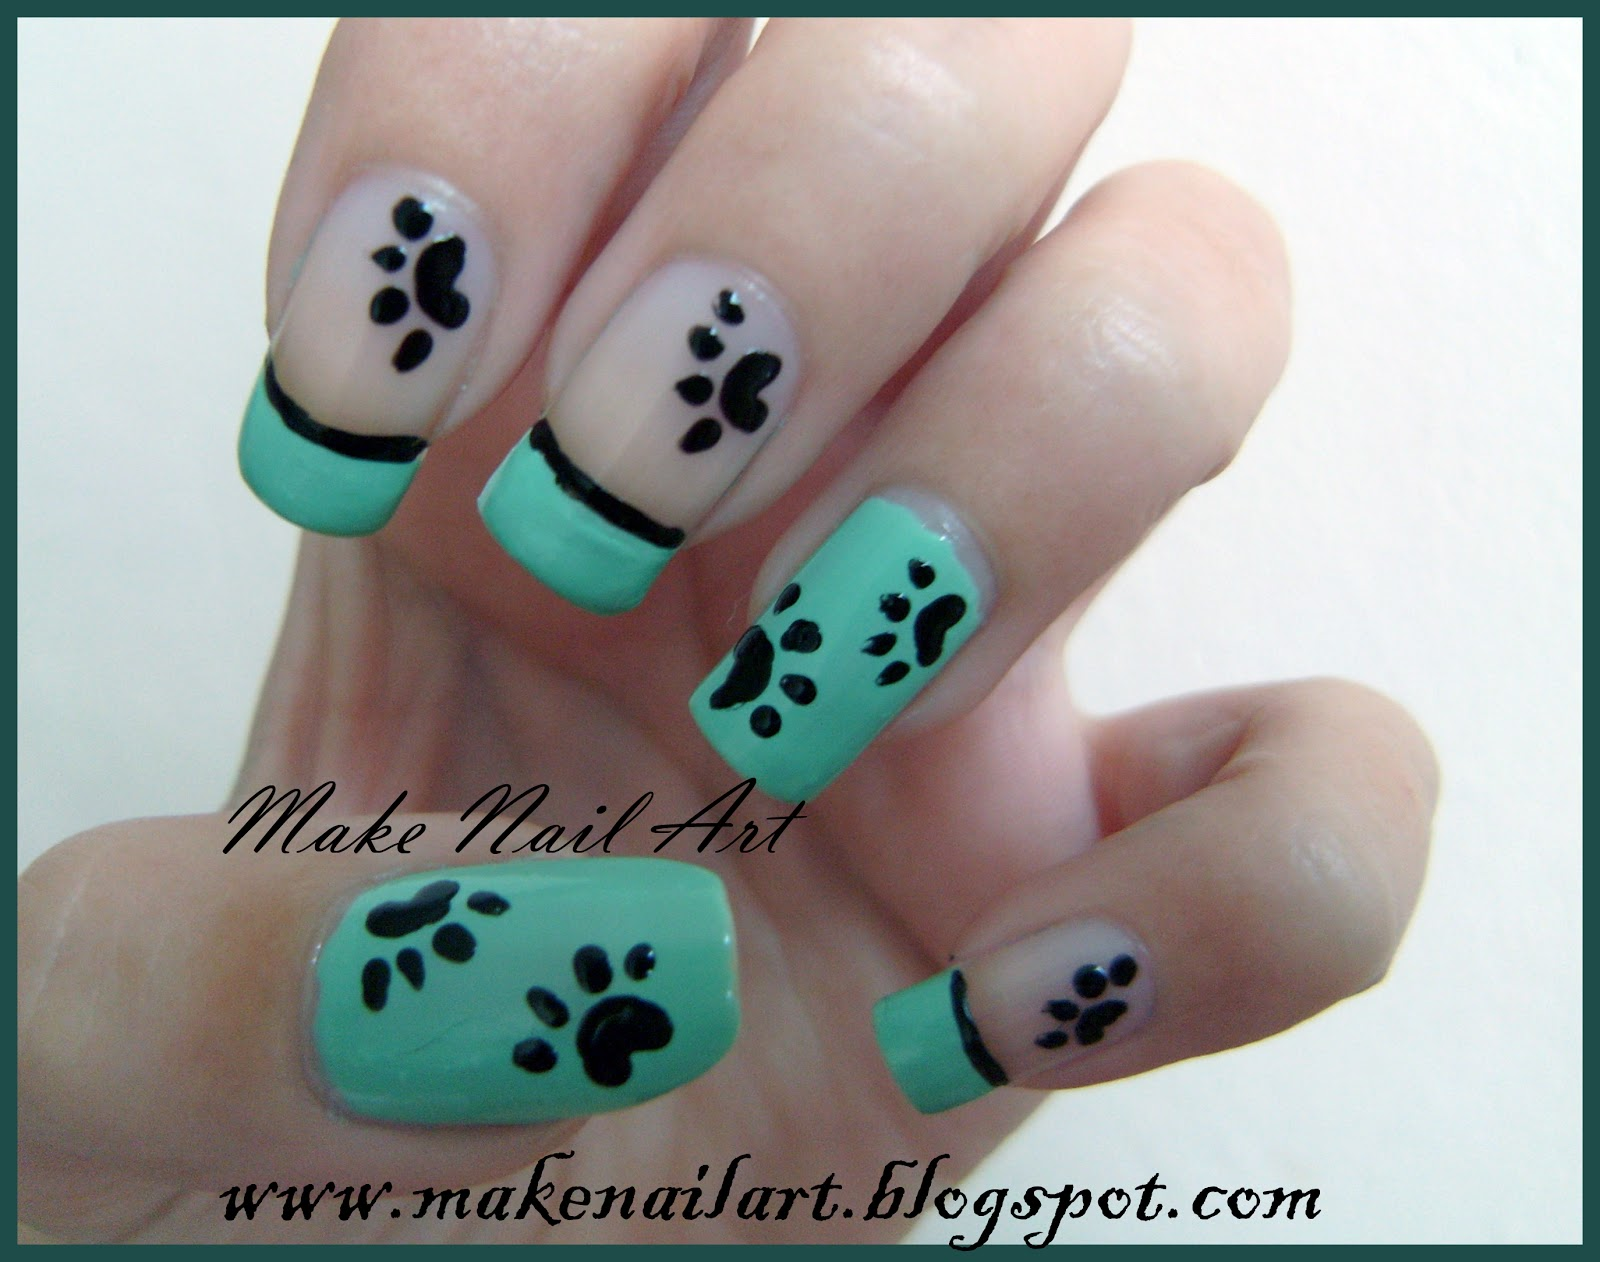 Make Nail Art Simple And Cute Paws Nail Art Tutorial